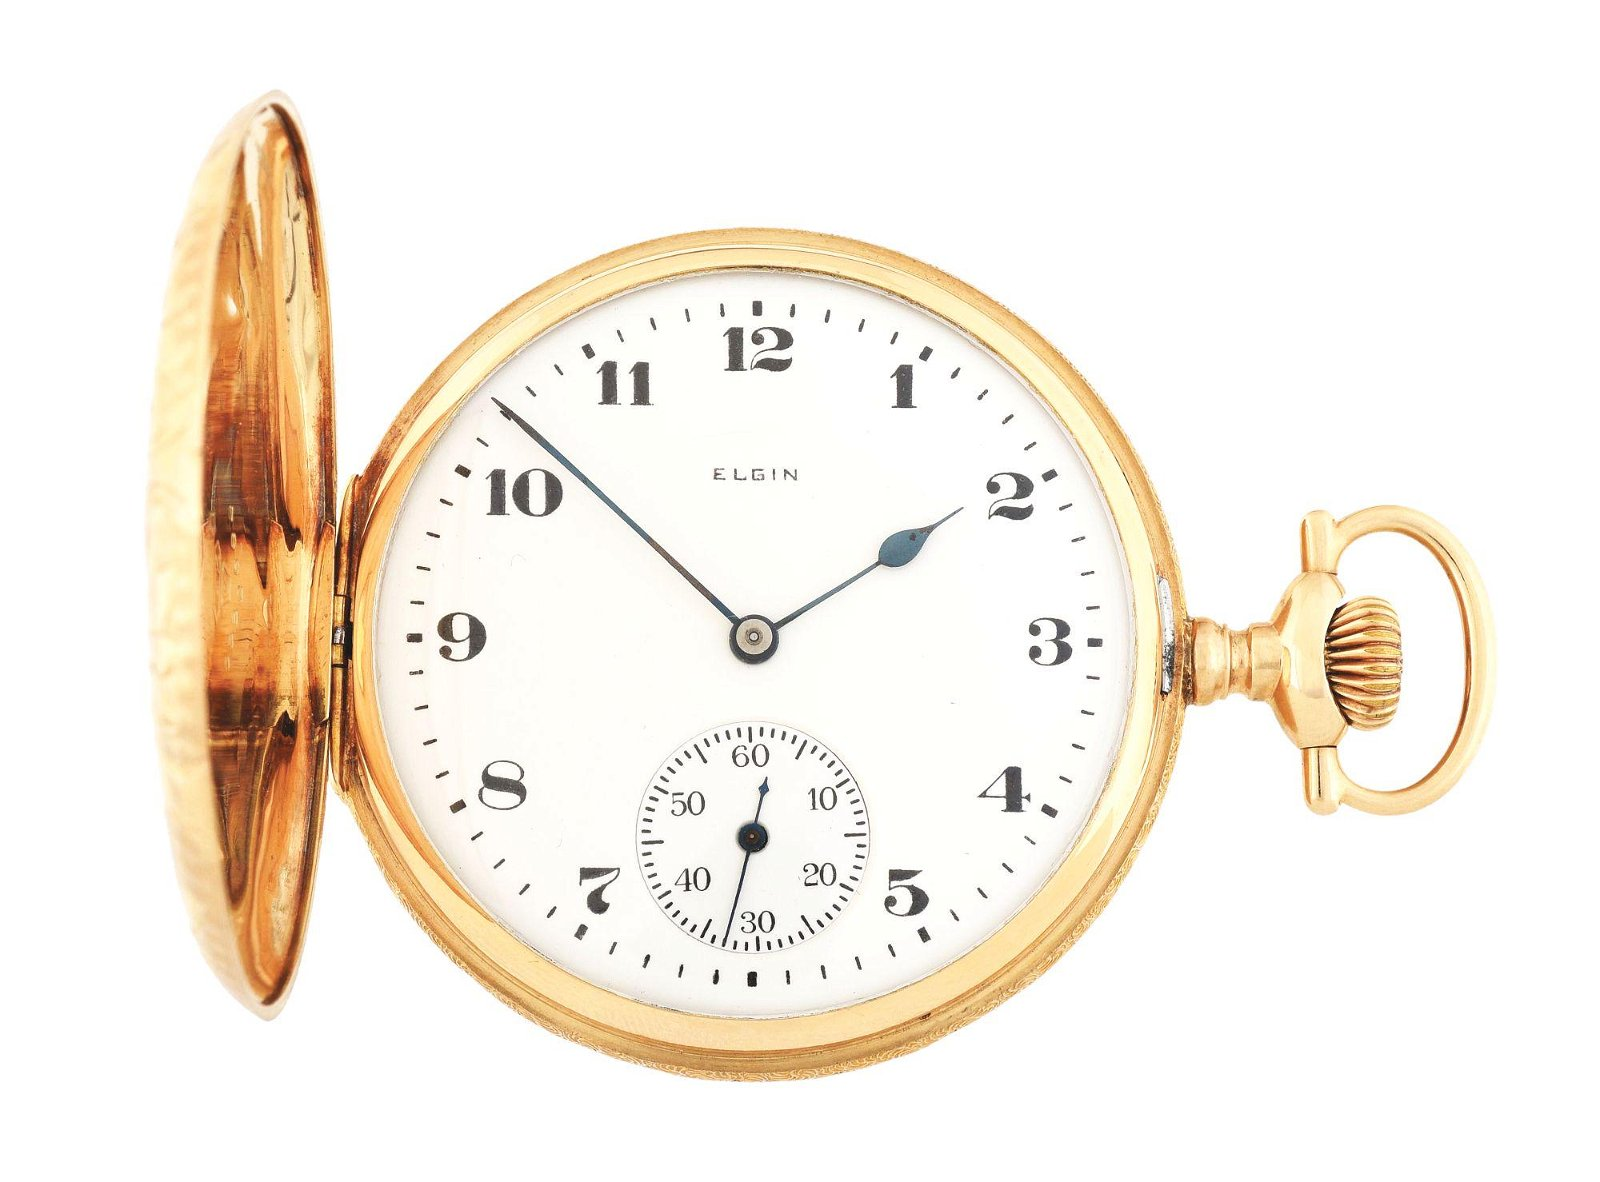 14K GOLD ELGIN 386 H/C POCKET WATCH CIRCA 1923.